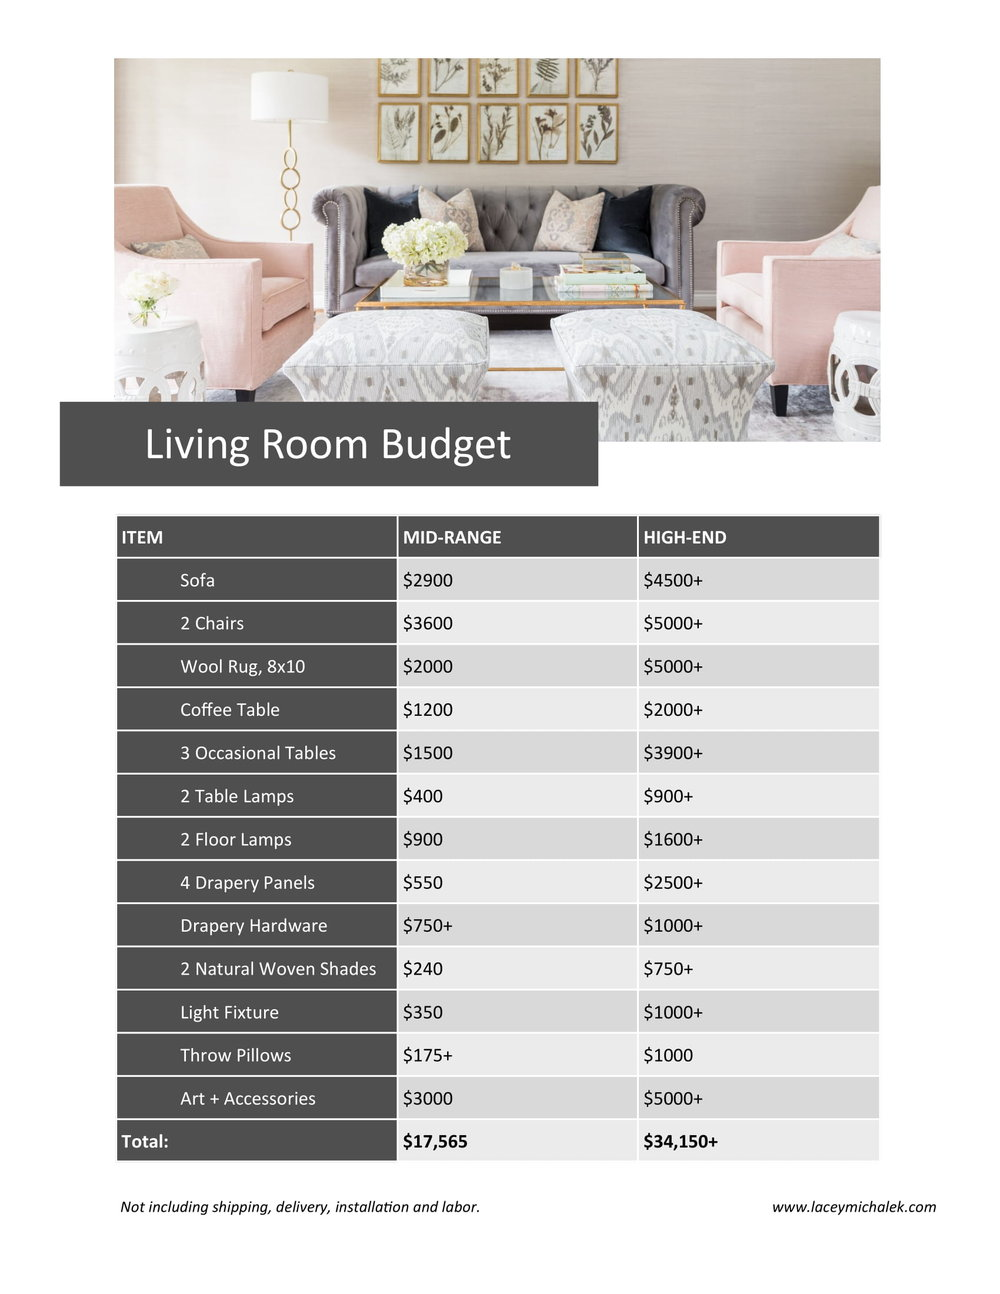 Living Room Budget Breakdown Cost of Furniture